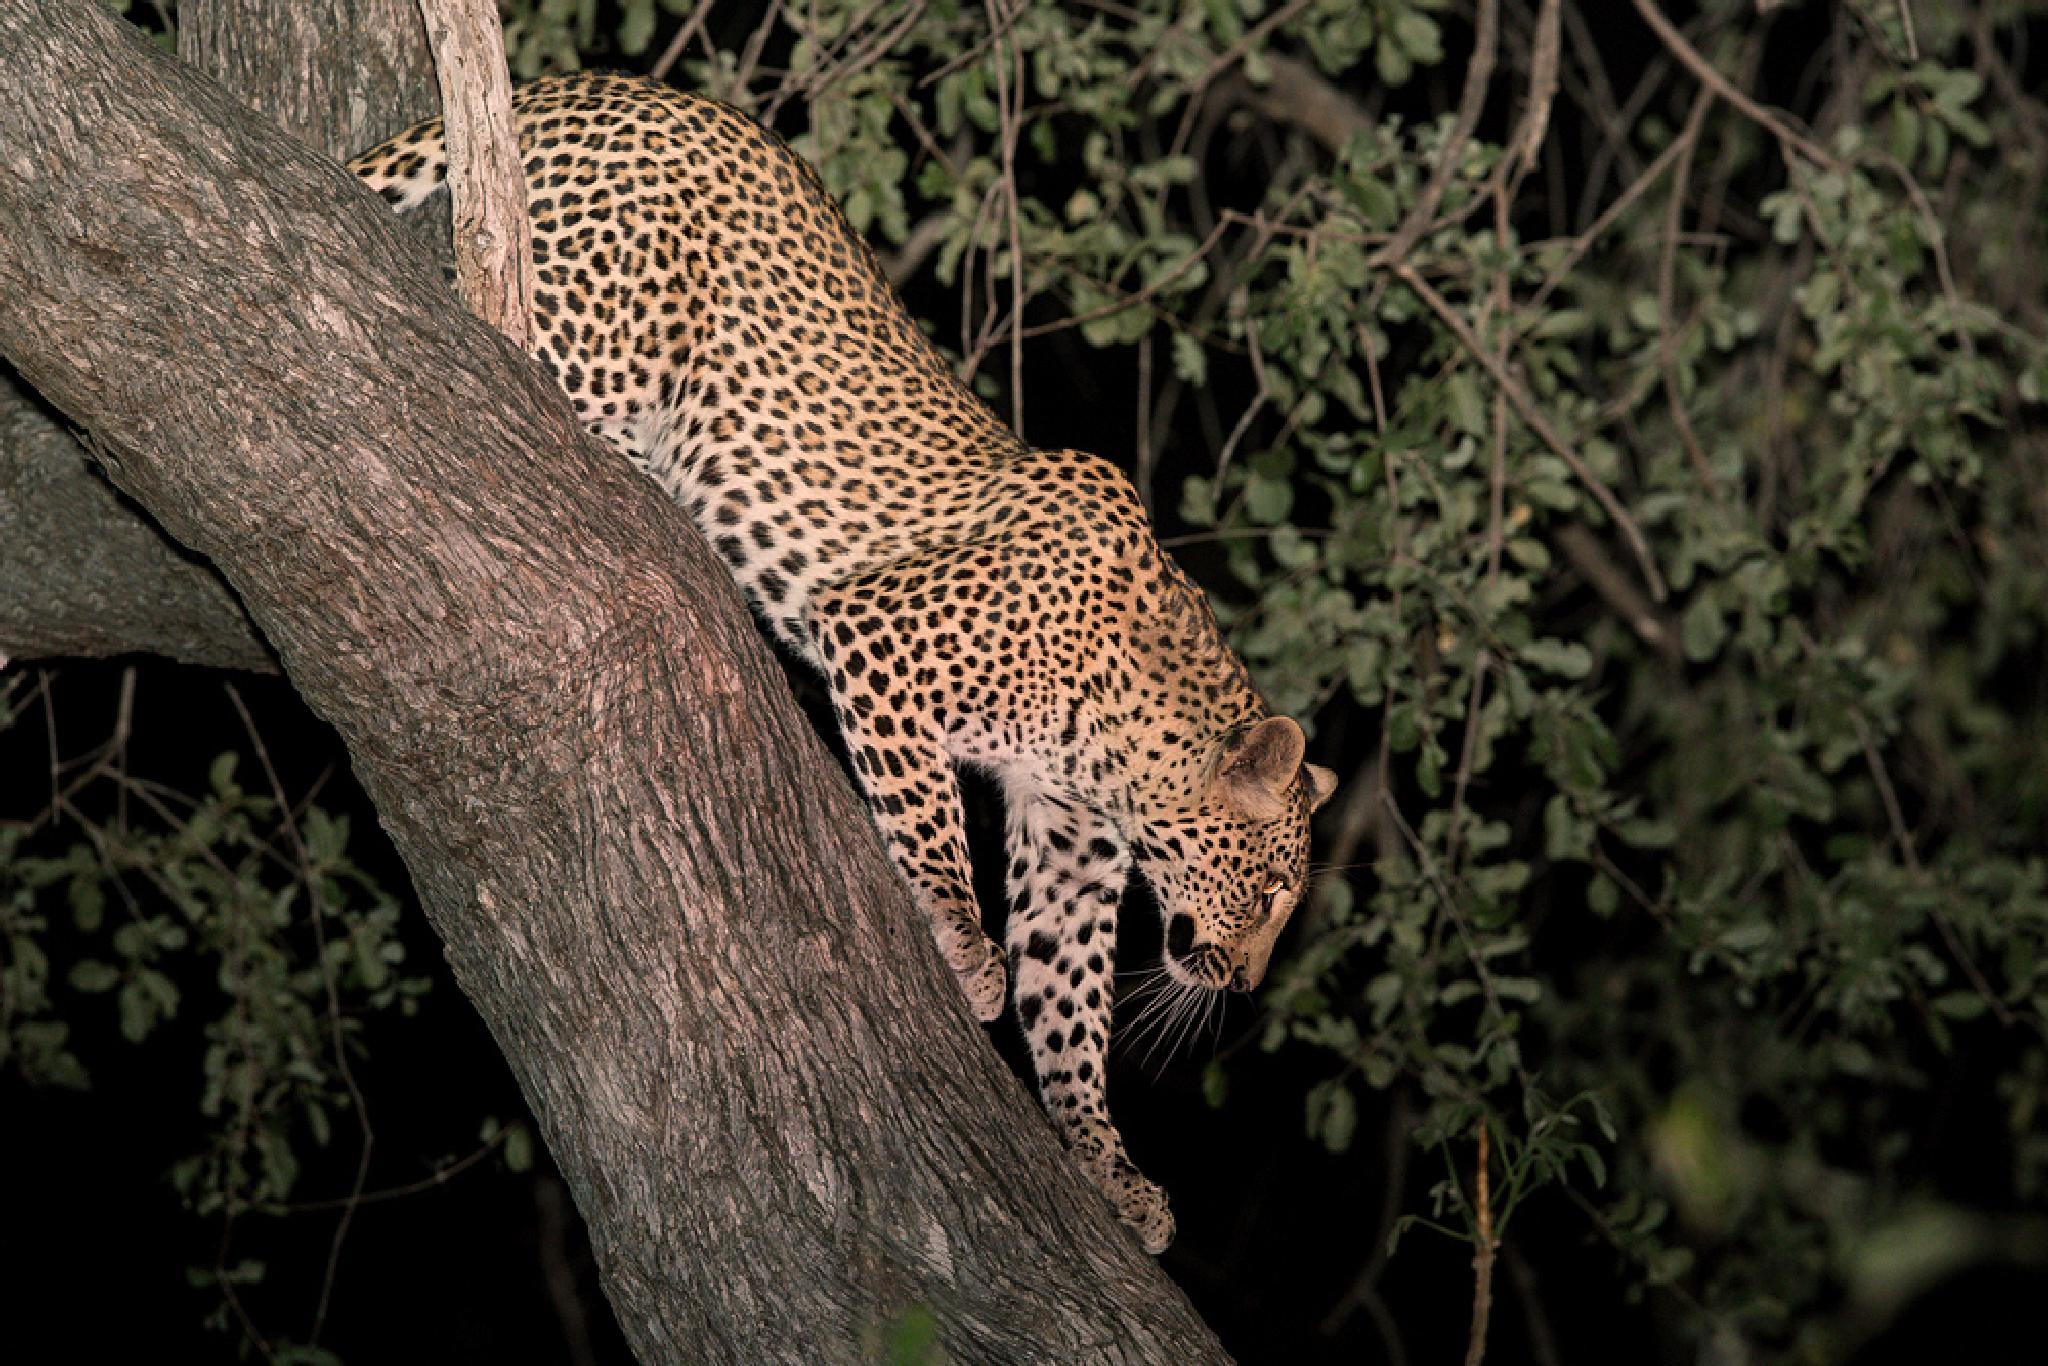 Night whiskers by Thomas Retterath